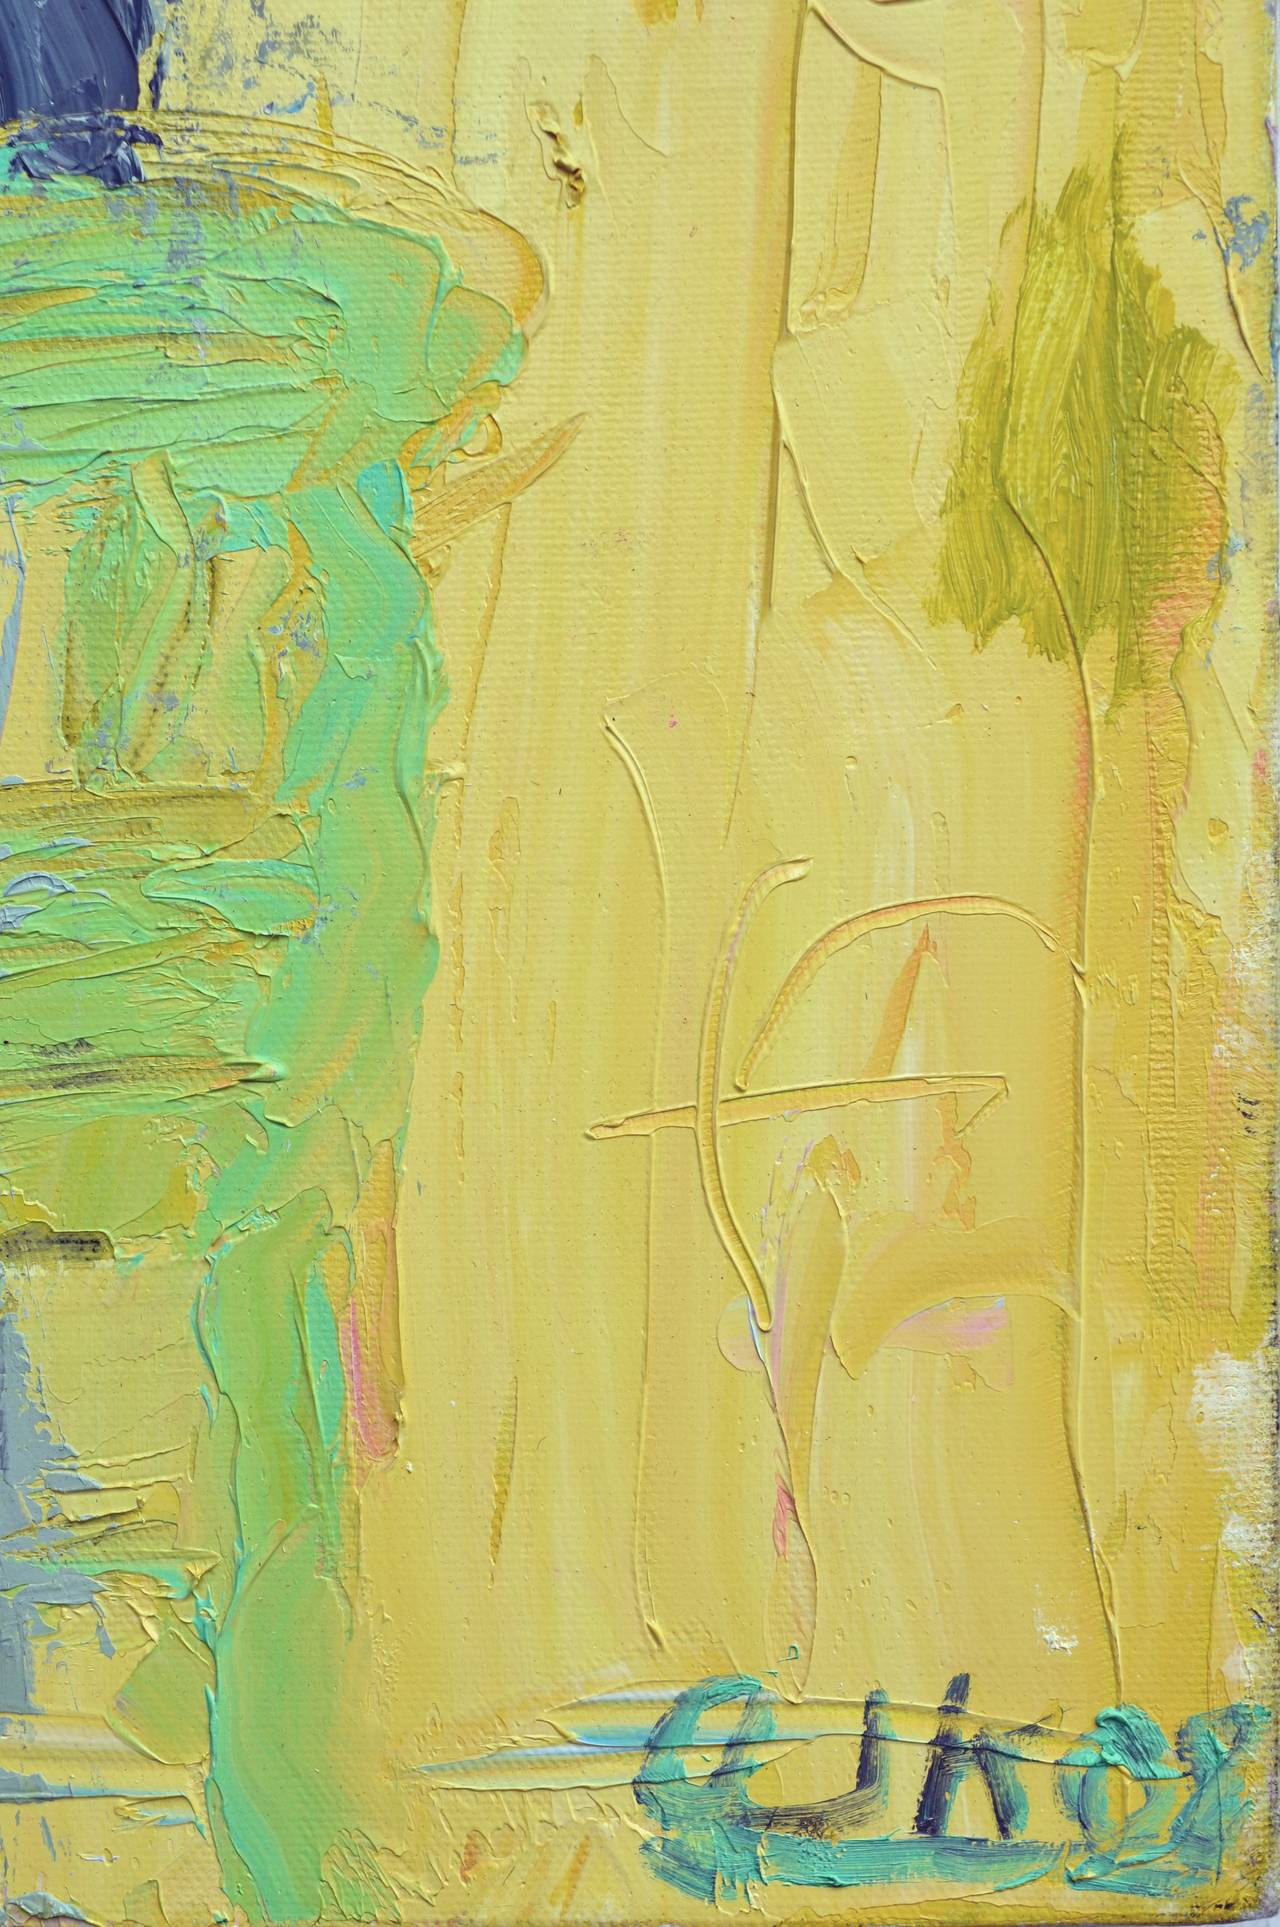 Waiting For Her Lover Bay Area Figurative Movement - Color-Field Painting by Arthur Krakower